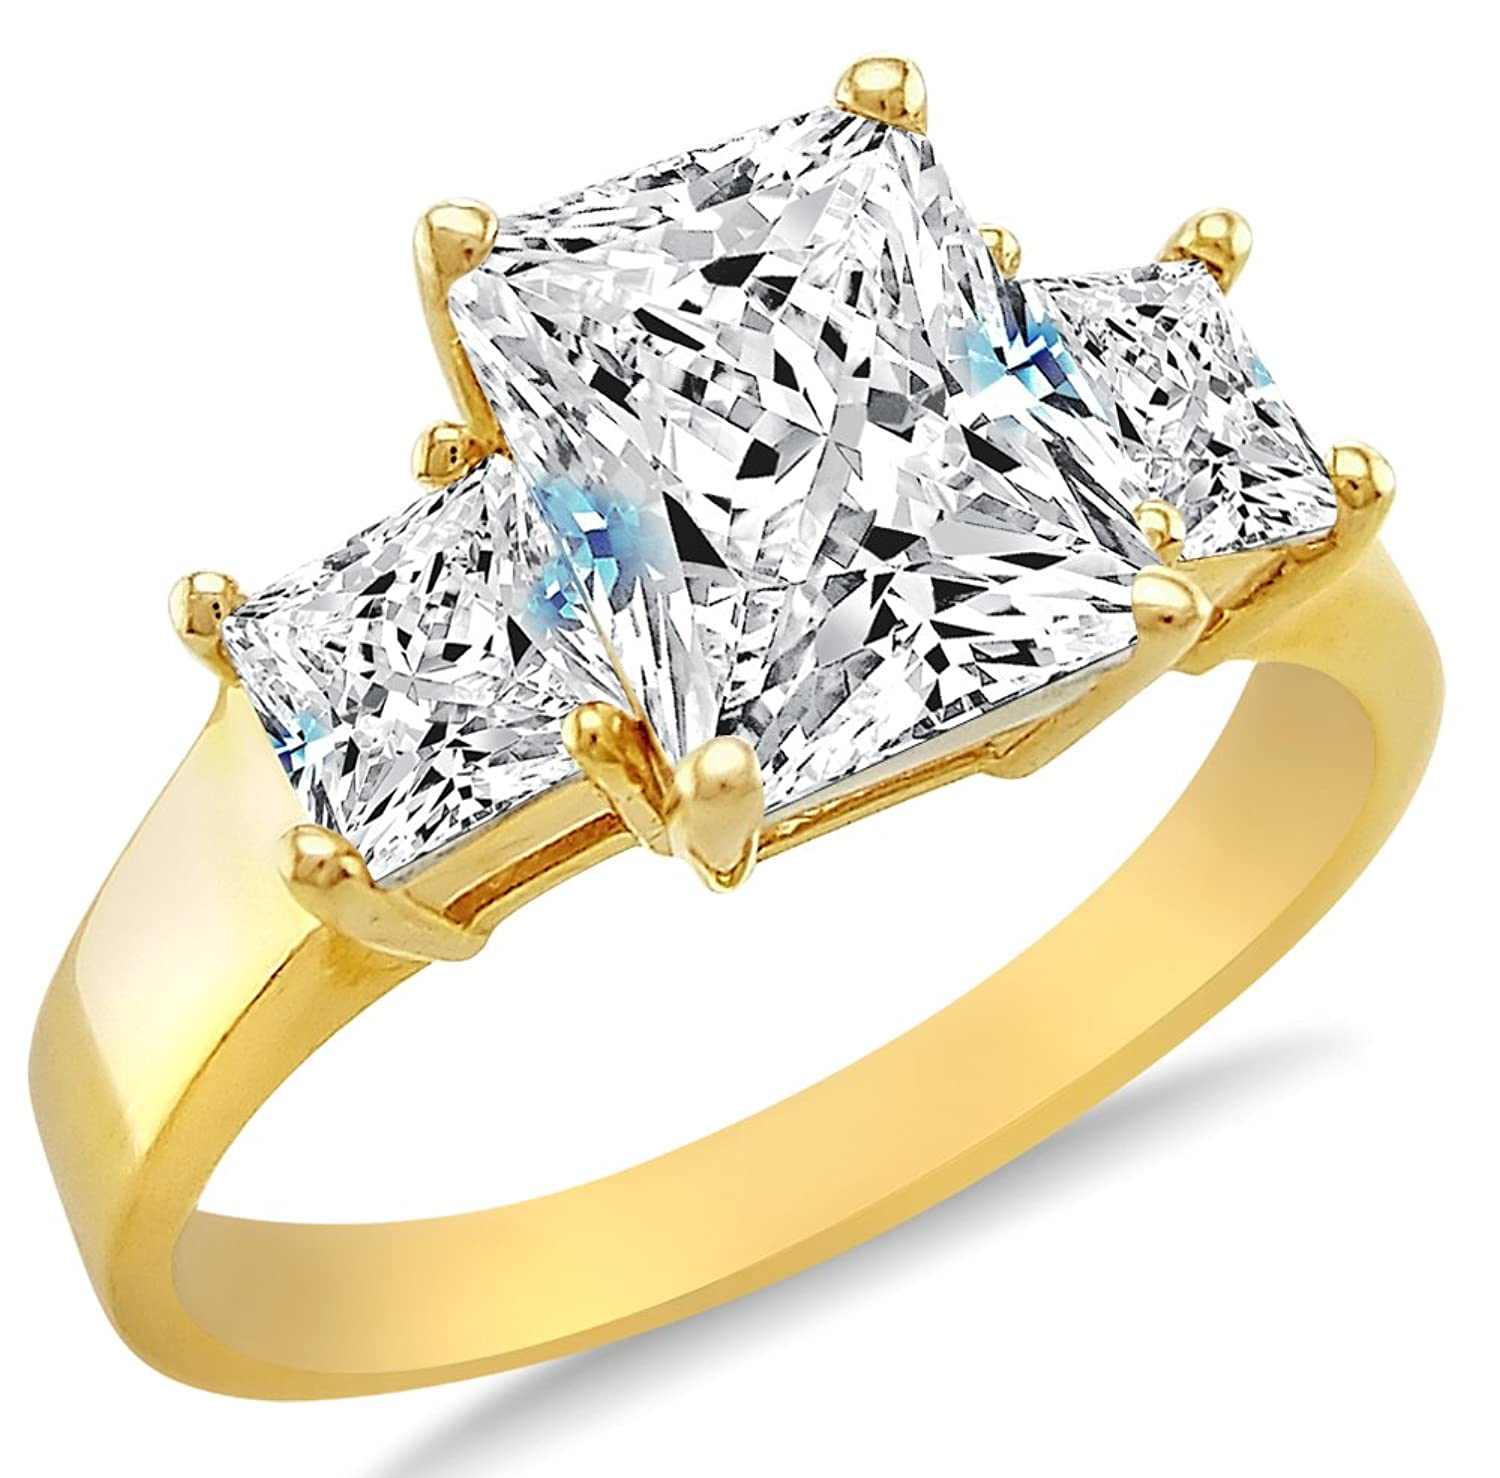 ring index engagement sides cut yellow lt three diamond fancy wemerald w jewelry rings side emerald radiant stone